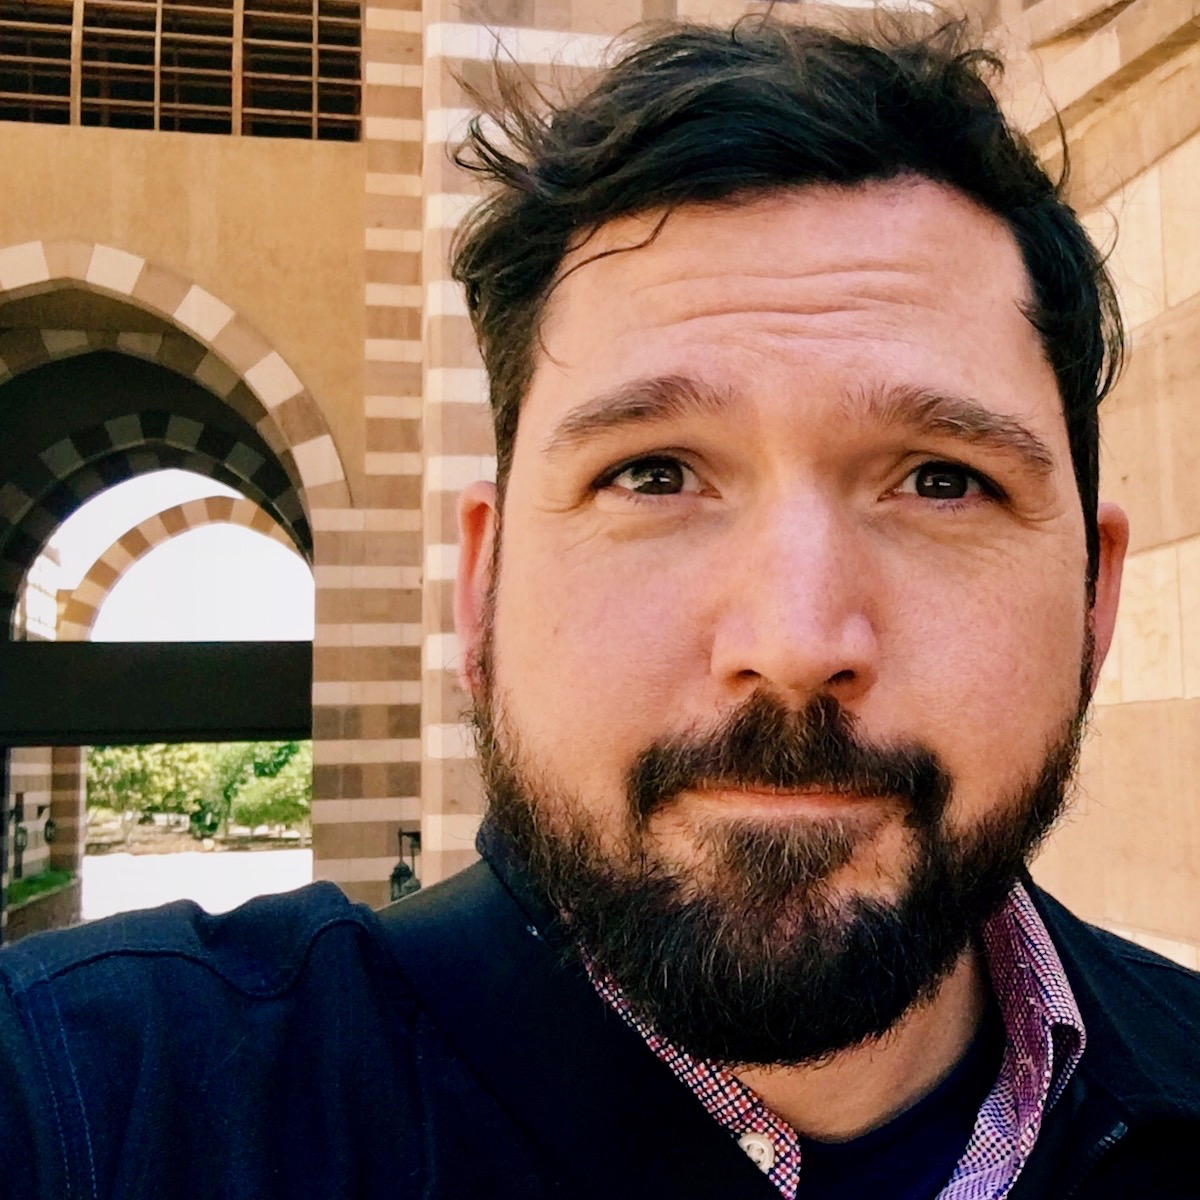 Jesse Stommel Executive Director of the Division of Teaching and Learning Technologies at University of Mary Washington. He is also Co-founder of Digital Pedagogy Lab and Hybrid Pedagogy: an open-access journal of learning, teaching, and technology. He has a PhD from U